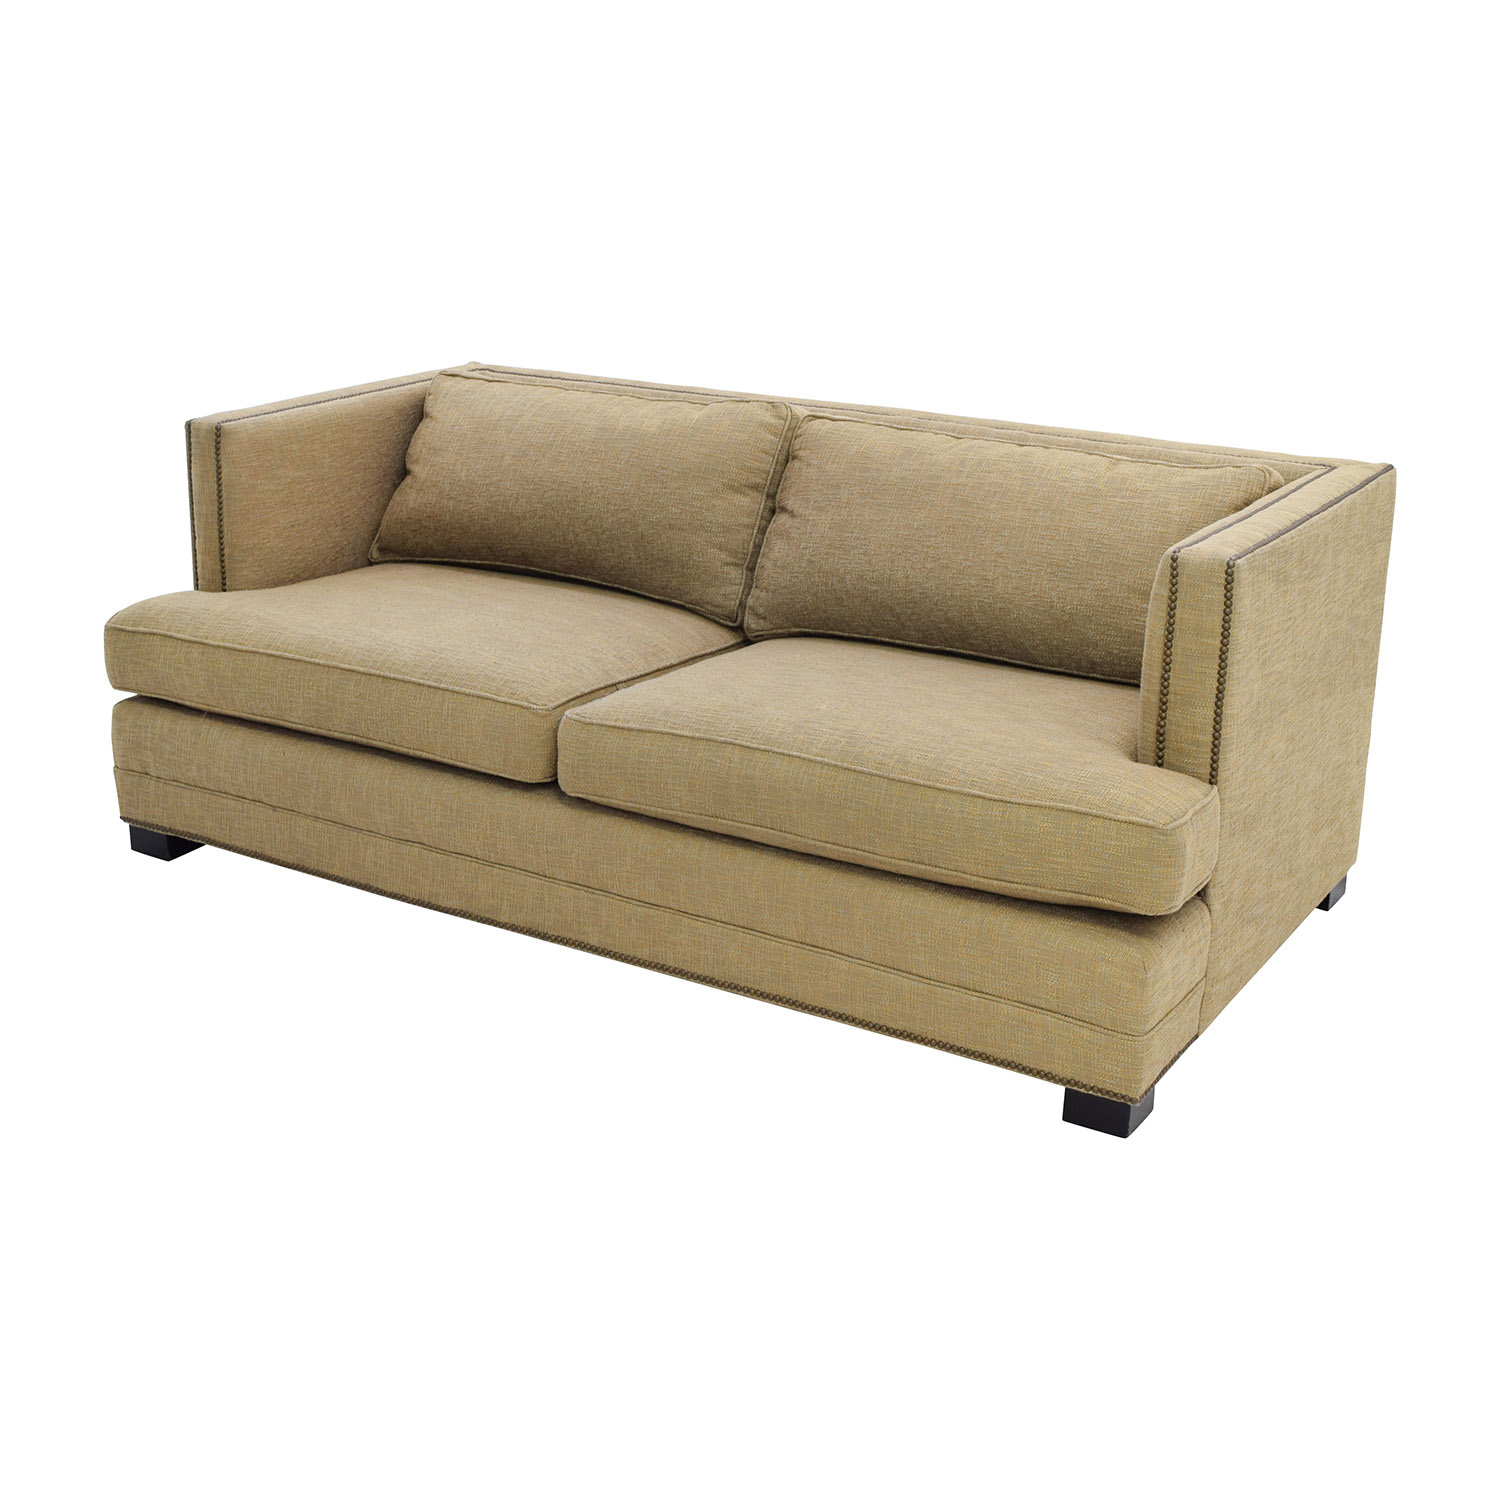 Alex 89 Sofa From Mitchell Gold Bob Williams 28 Images